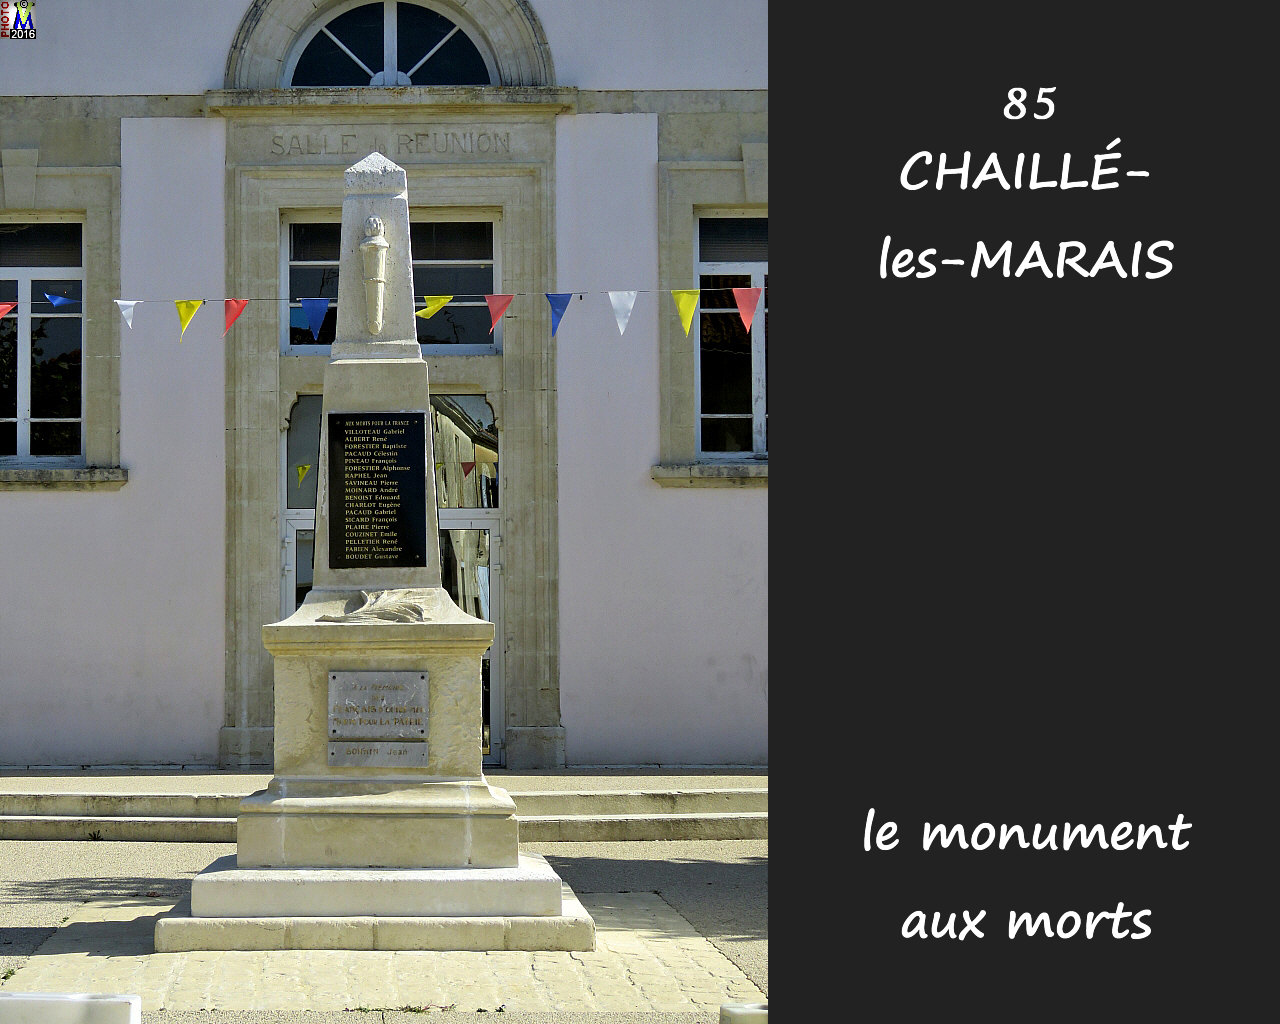 85CHAILLE-MARAIS_morts_1000.jpg